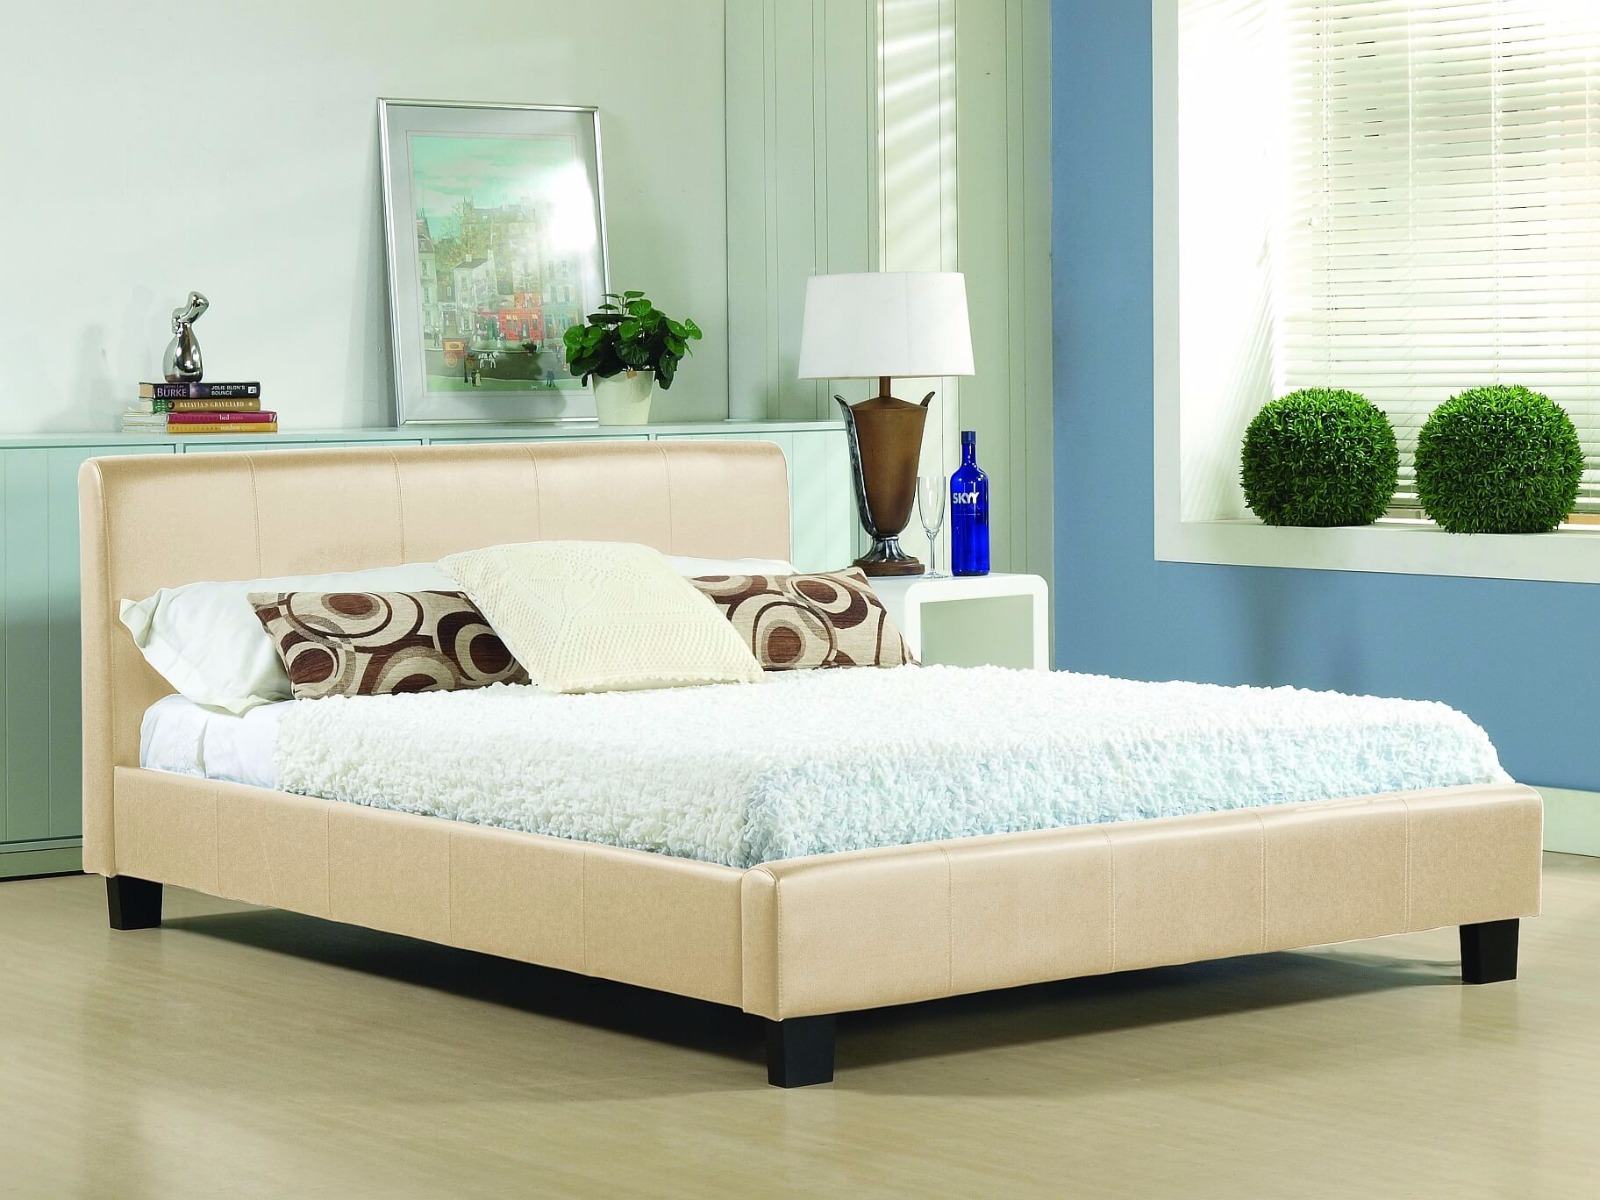 https://www.firstfurniture.co.uk/pub/media/catalog/product/h/a/hamburg_cream_1.jpg